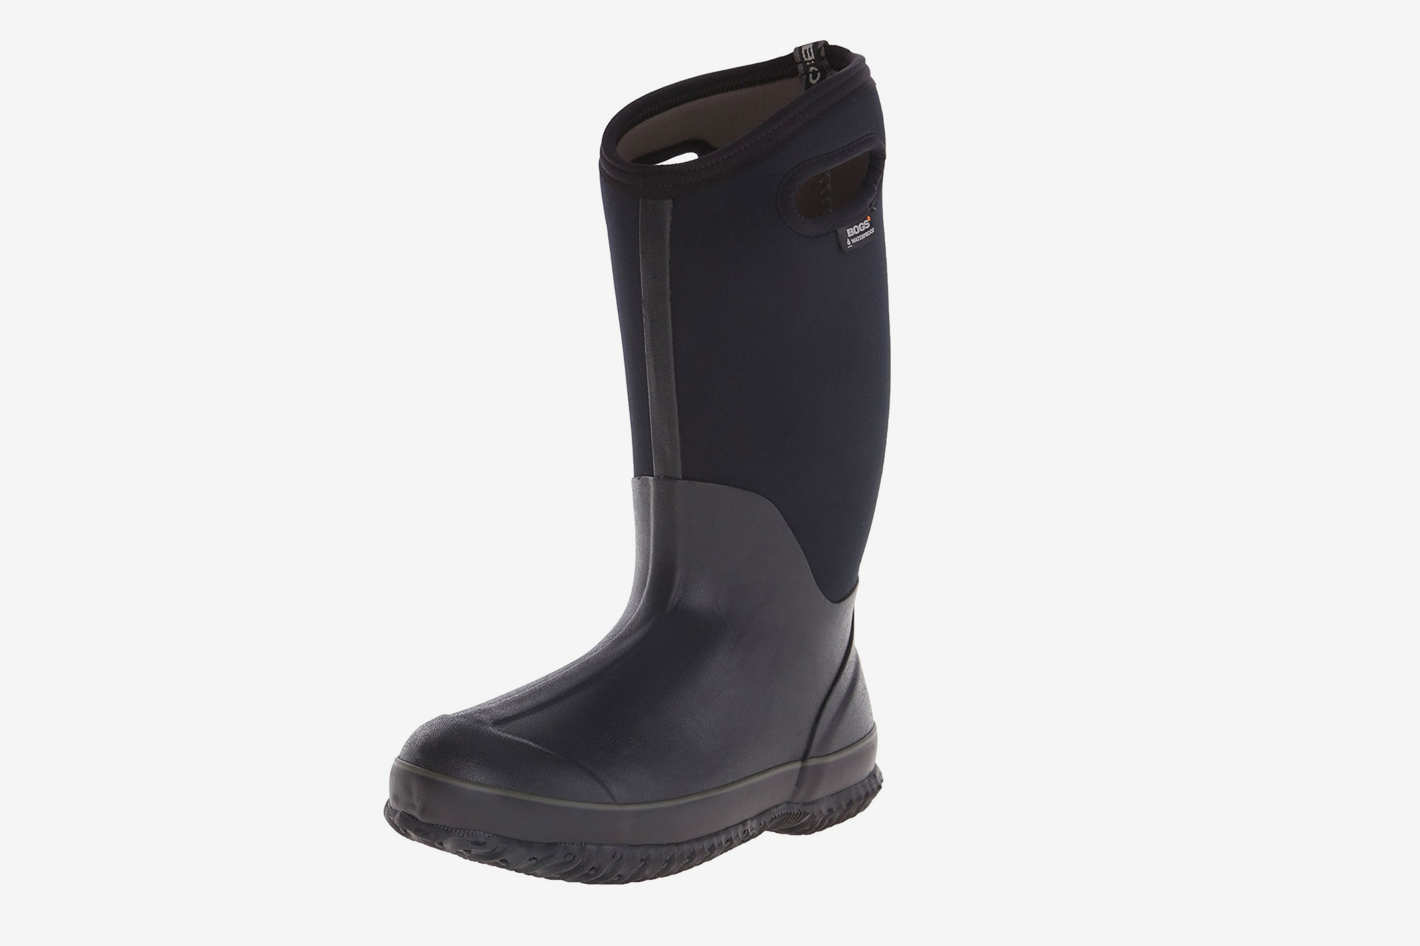 54fb7fc7b82 7 Pairs of Rain Boots for Wide Calves